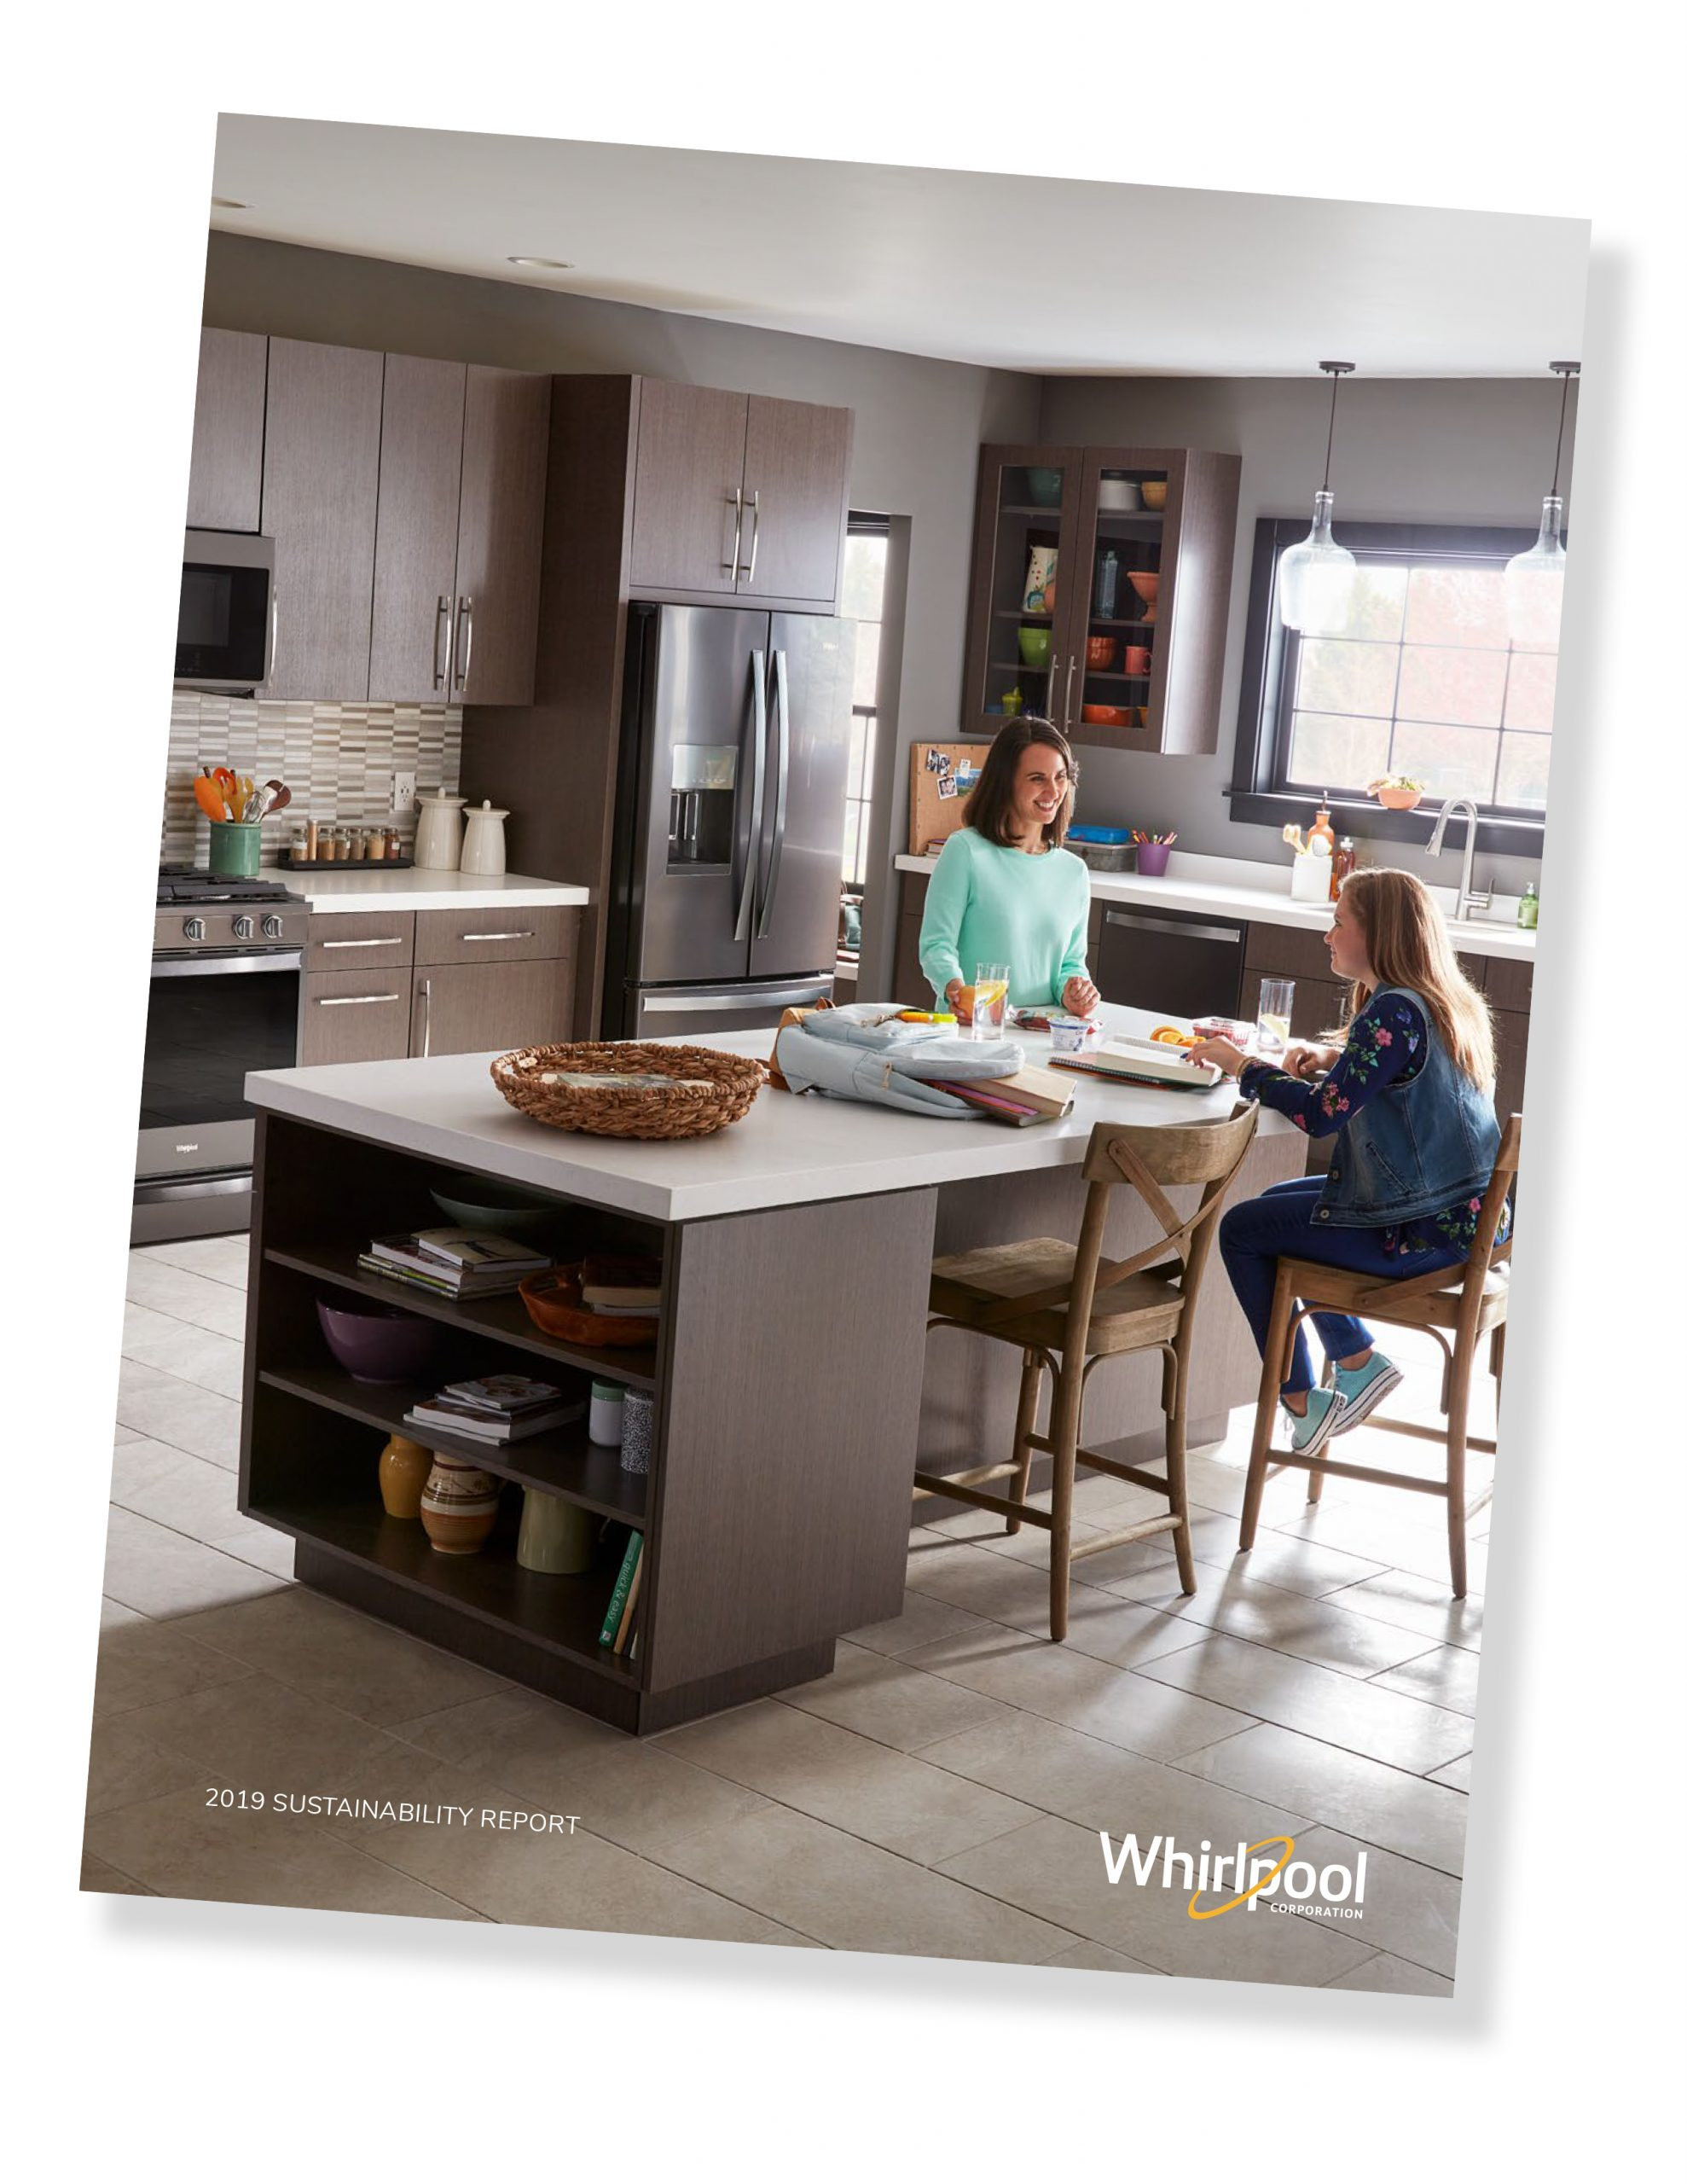 Whirlpool-Corporation-2019-Sustainability-Report-MOCK-UP